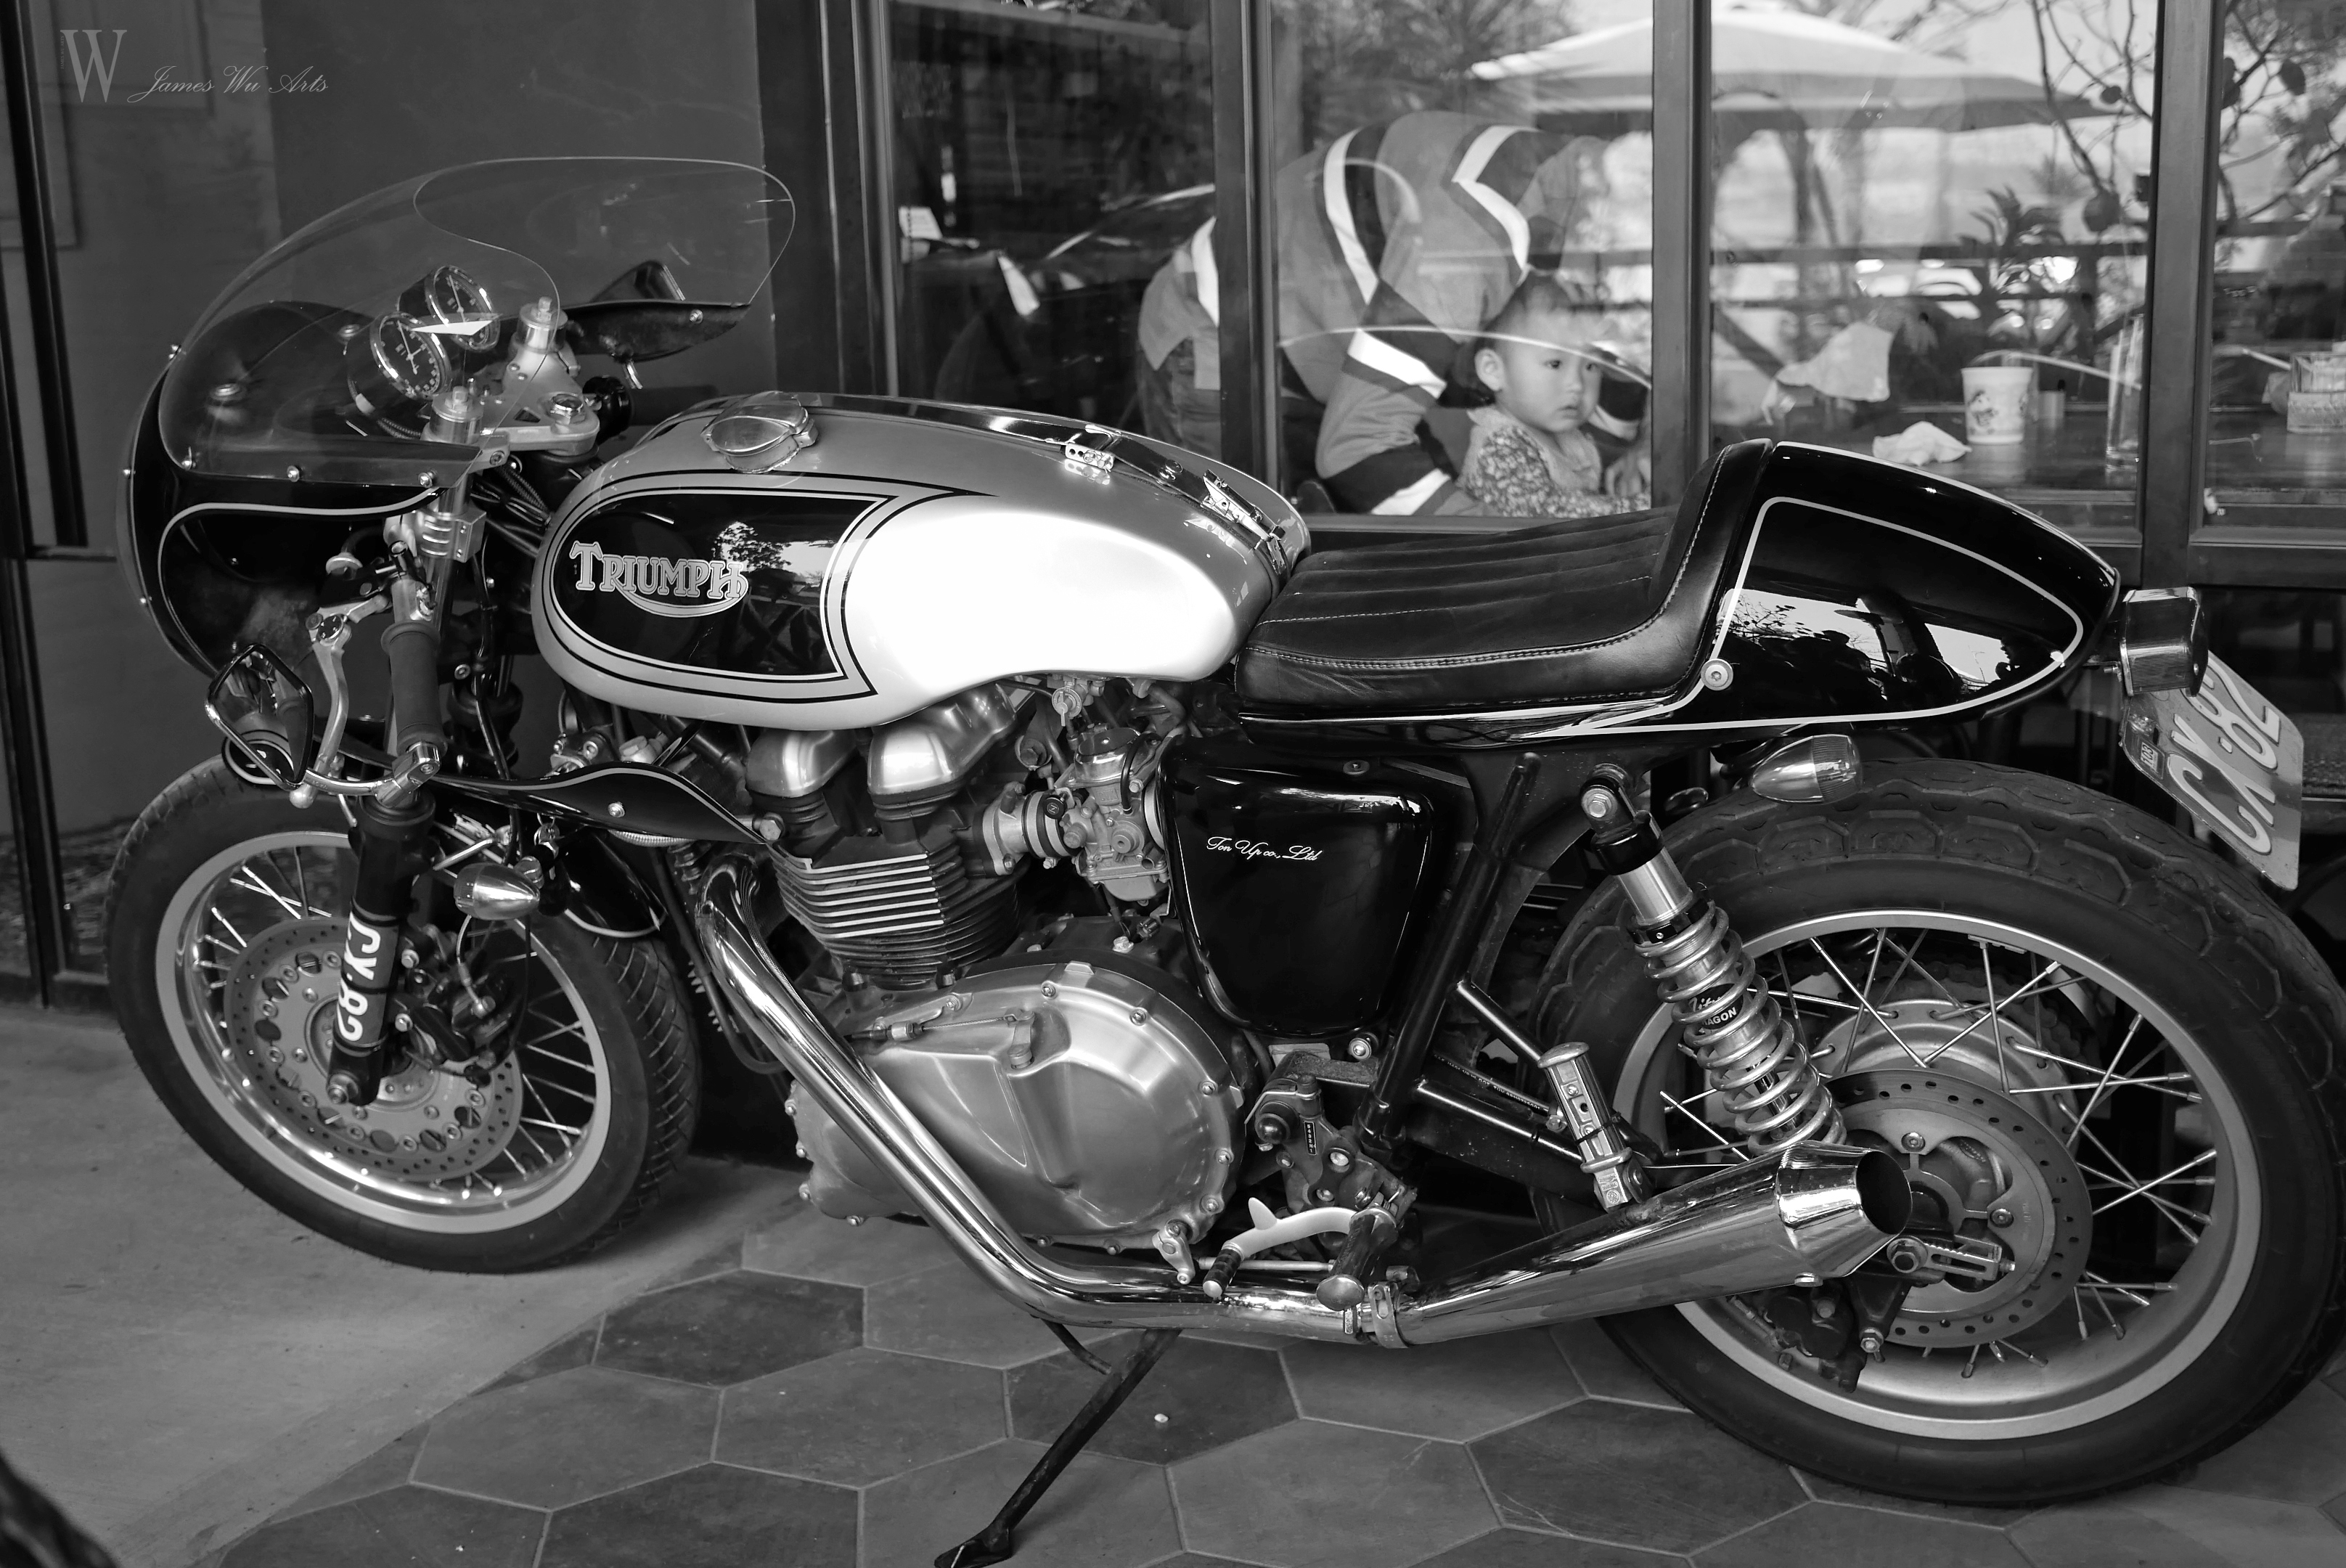 TONUP ROCKERS CAFE RACER (83)